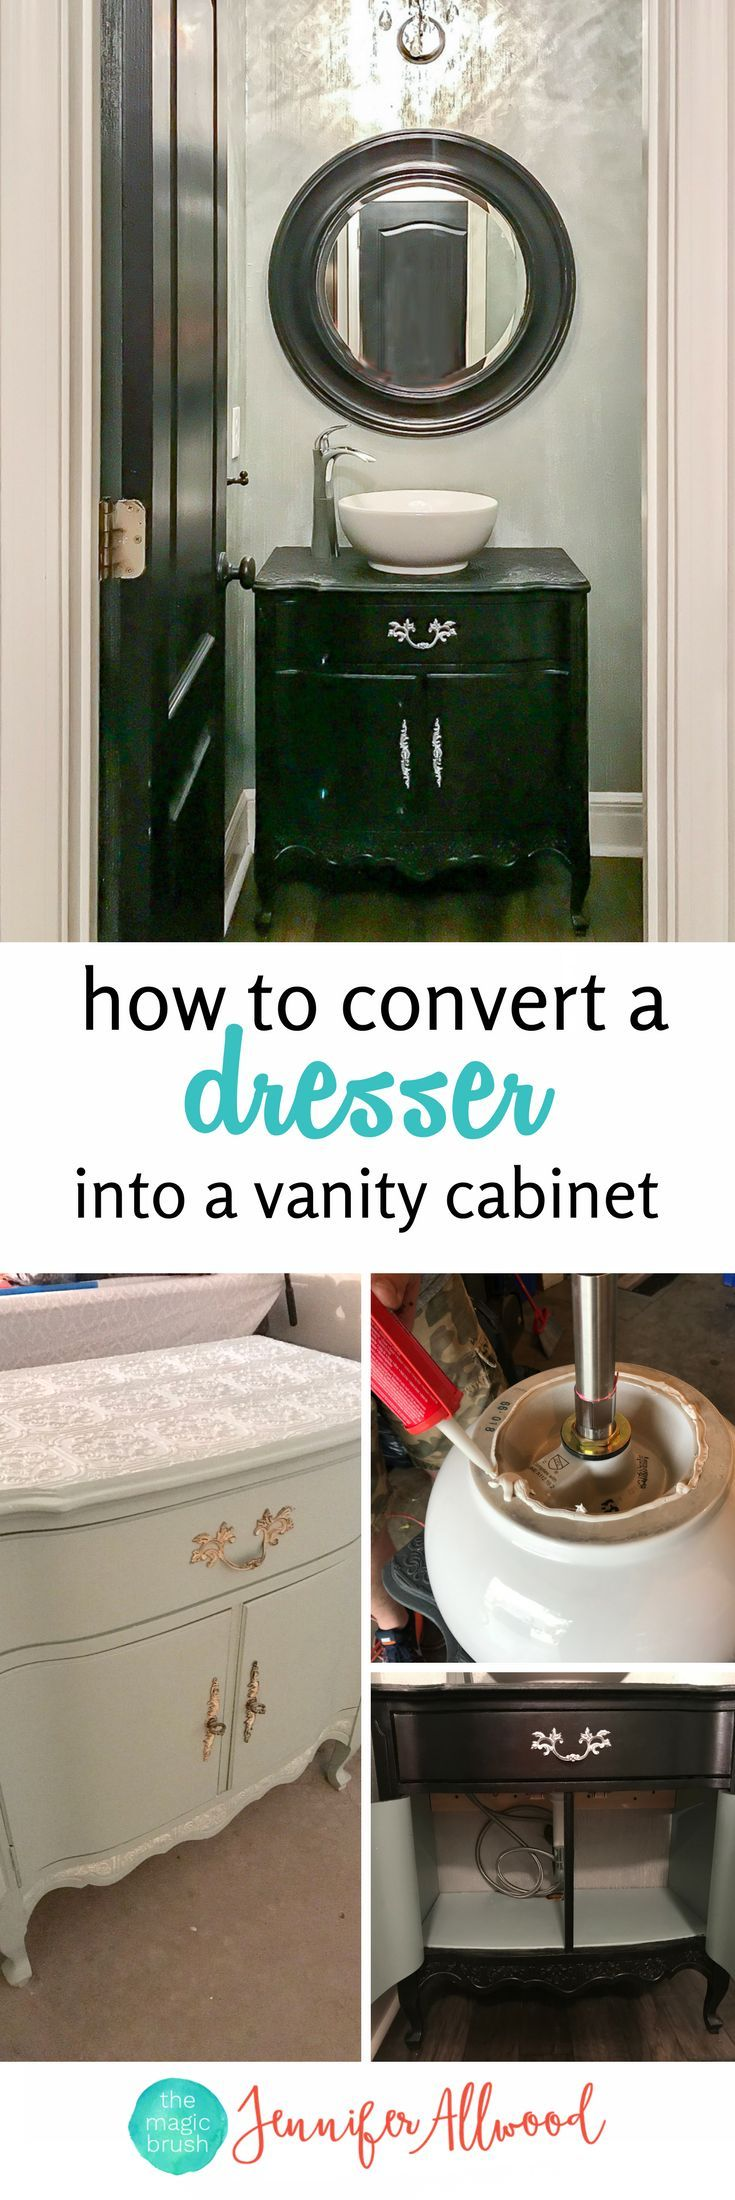 Info's : How to Make a Black Dresser Bathroom Vanity Cabinet | Convert an old dresser into a vanity cabinet | black & grey bathroom ideas by Jennifer Allwood